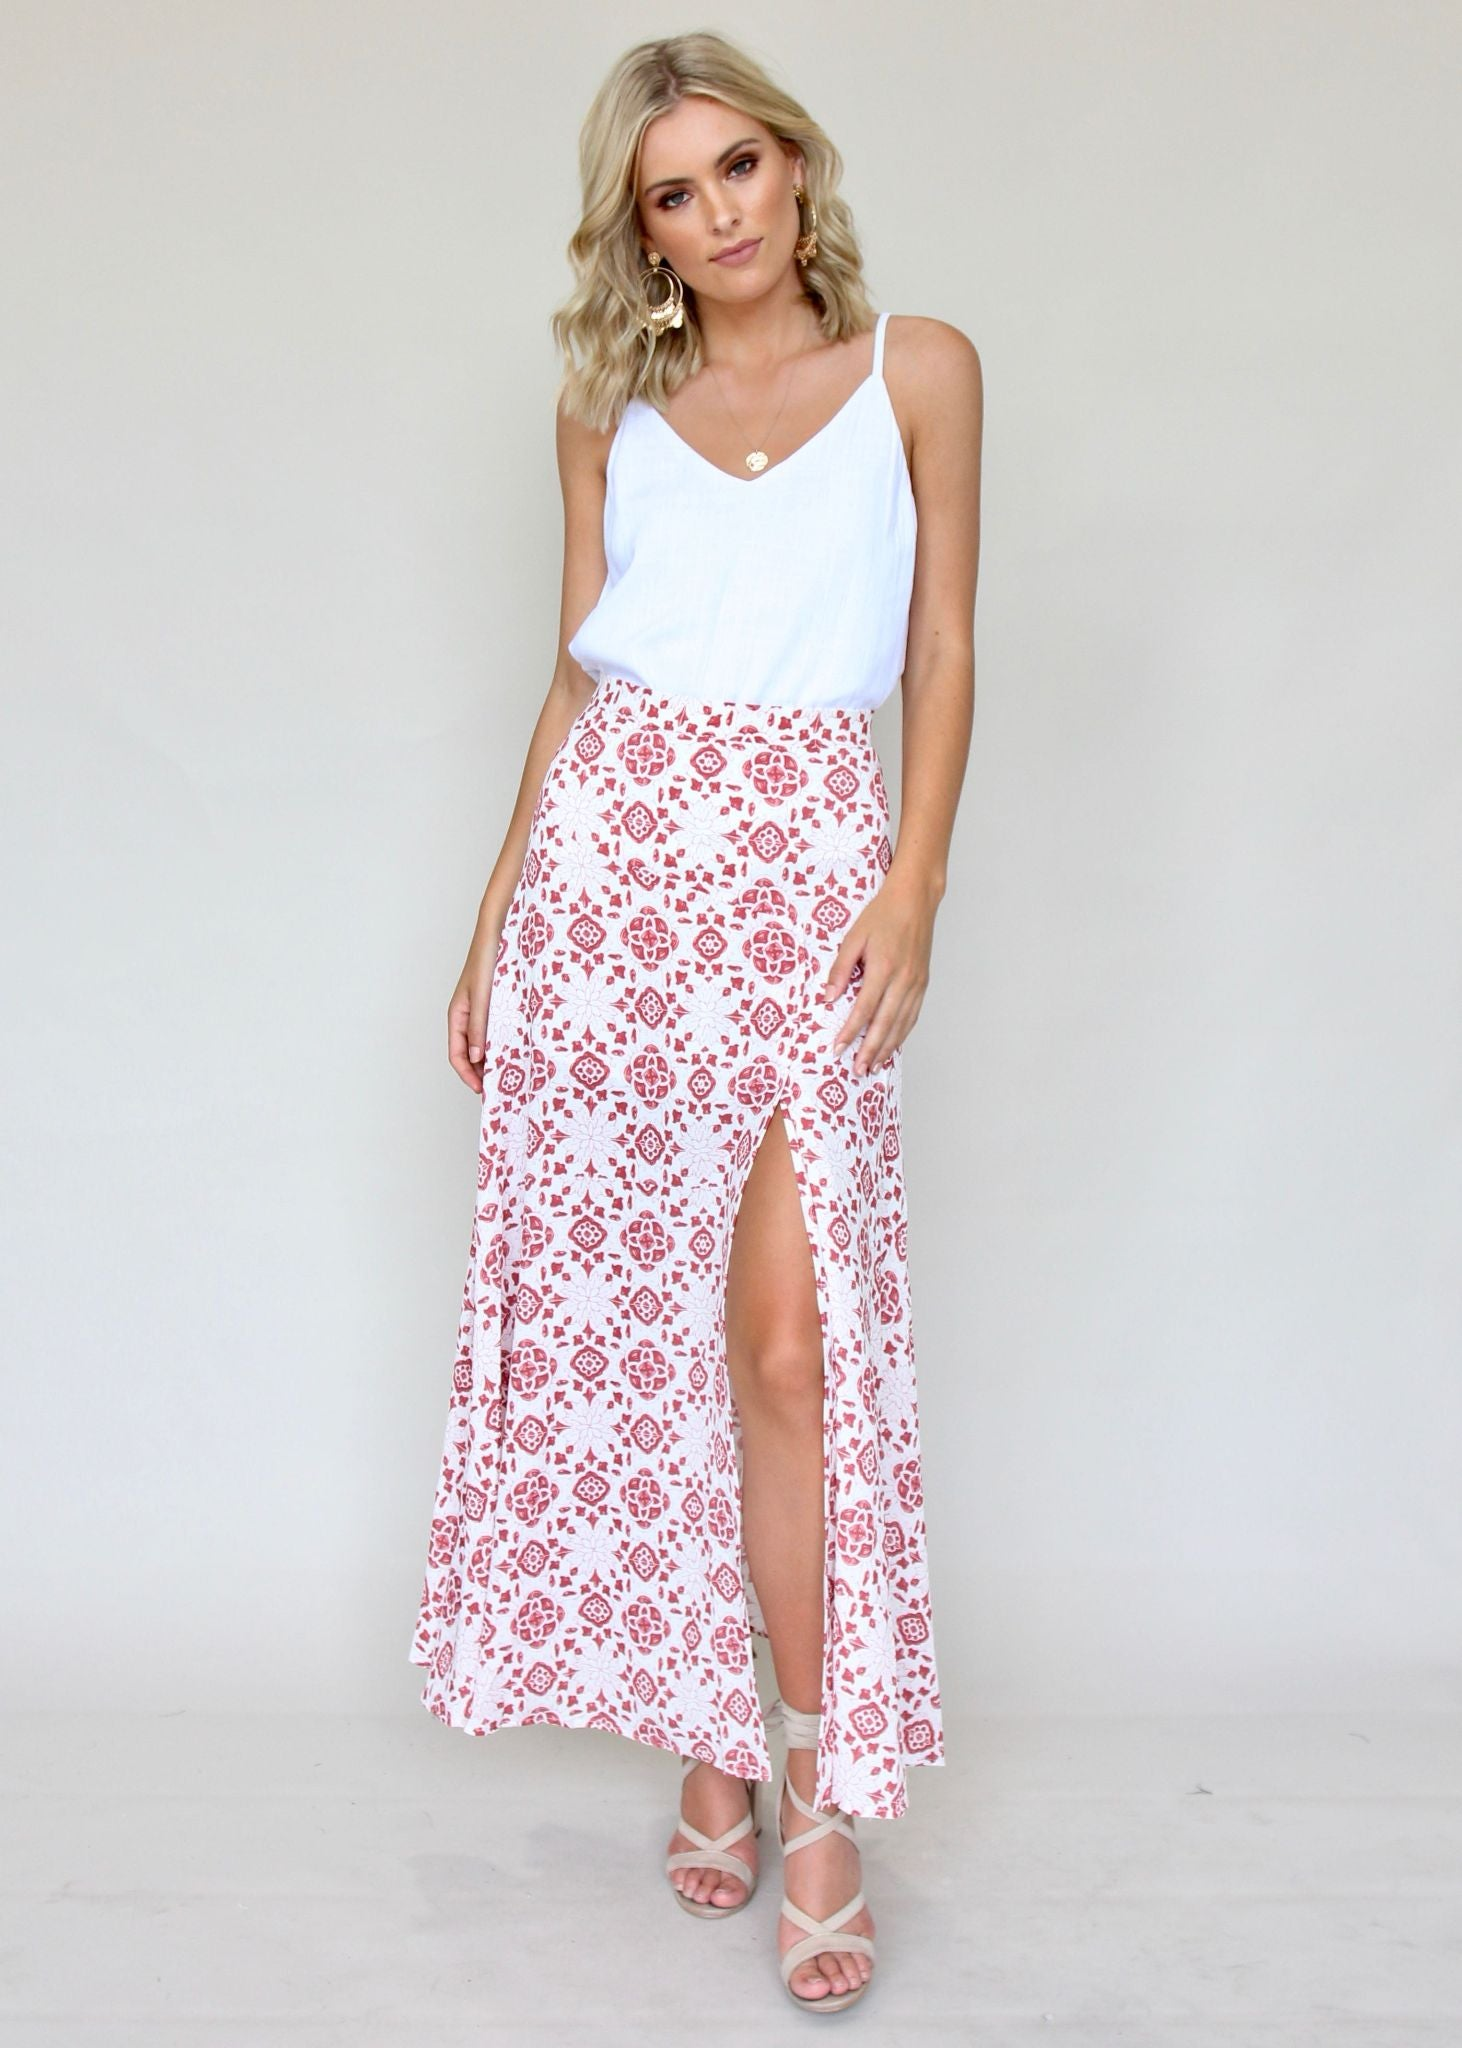 Days of Heaven Maxi Skirt - Oribe